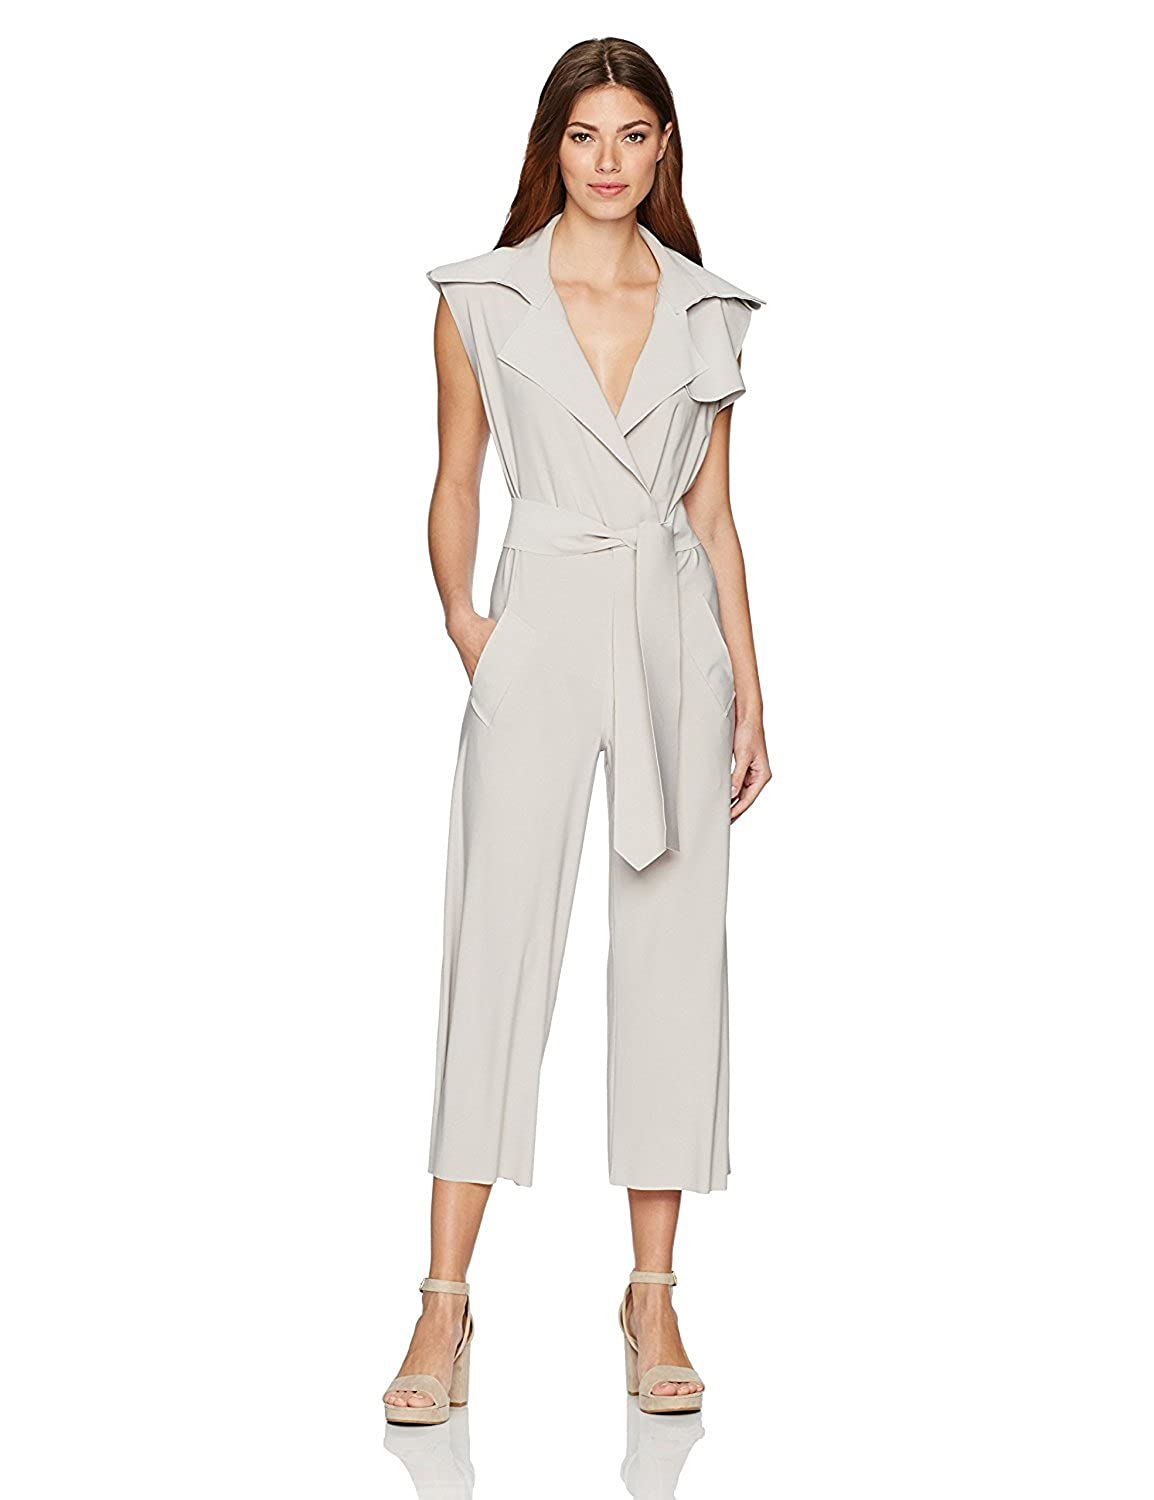 Norma Kamali Women's Double Breasted Trench Sleeveless Cropped Jumpsuit Oyster M [並行輸入品] B075CJK318